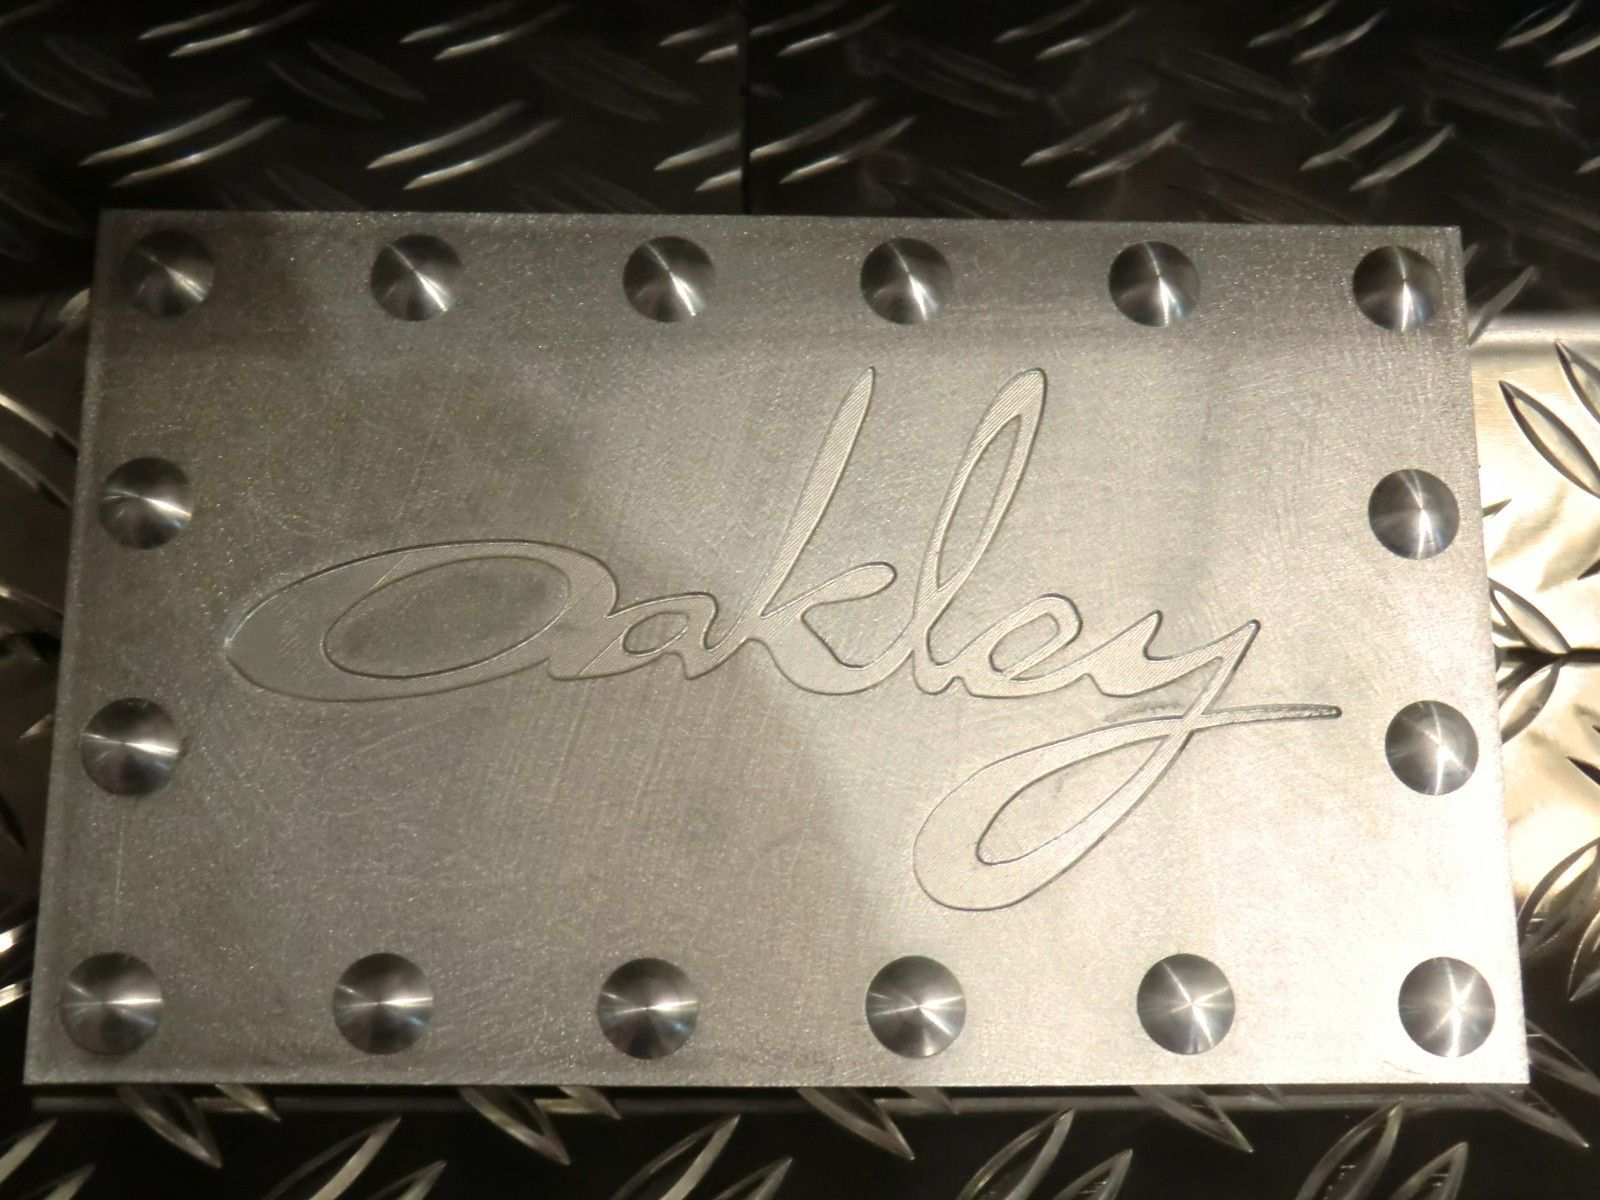 Oakley Plates selfmade on my machine for my towers - CIMG1851.JPG